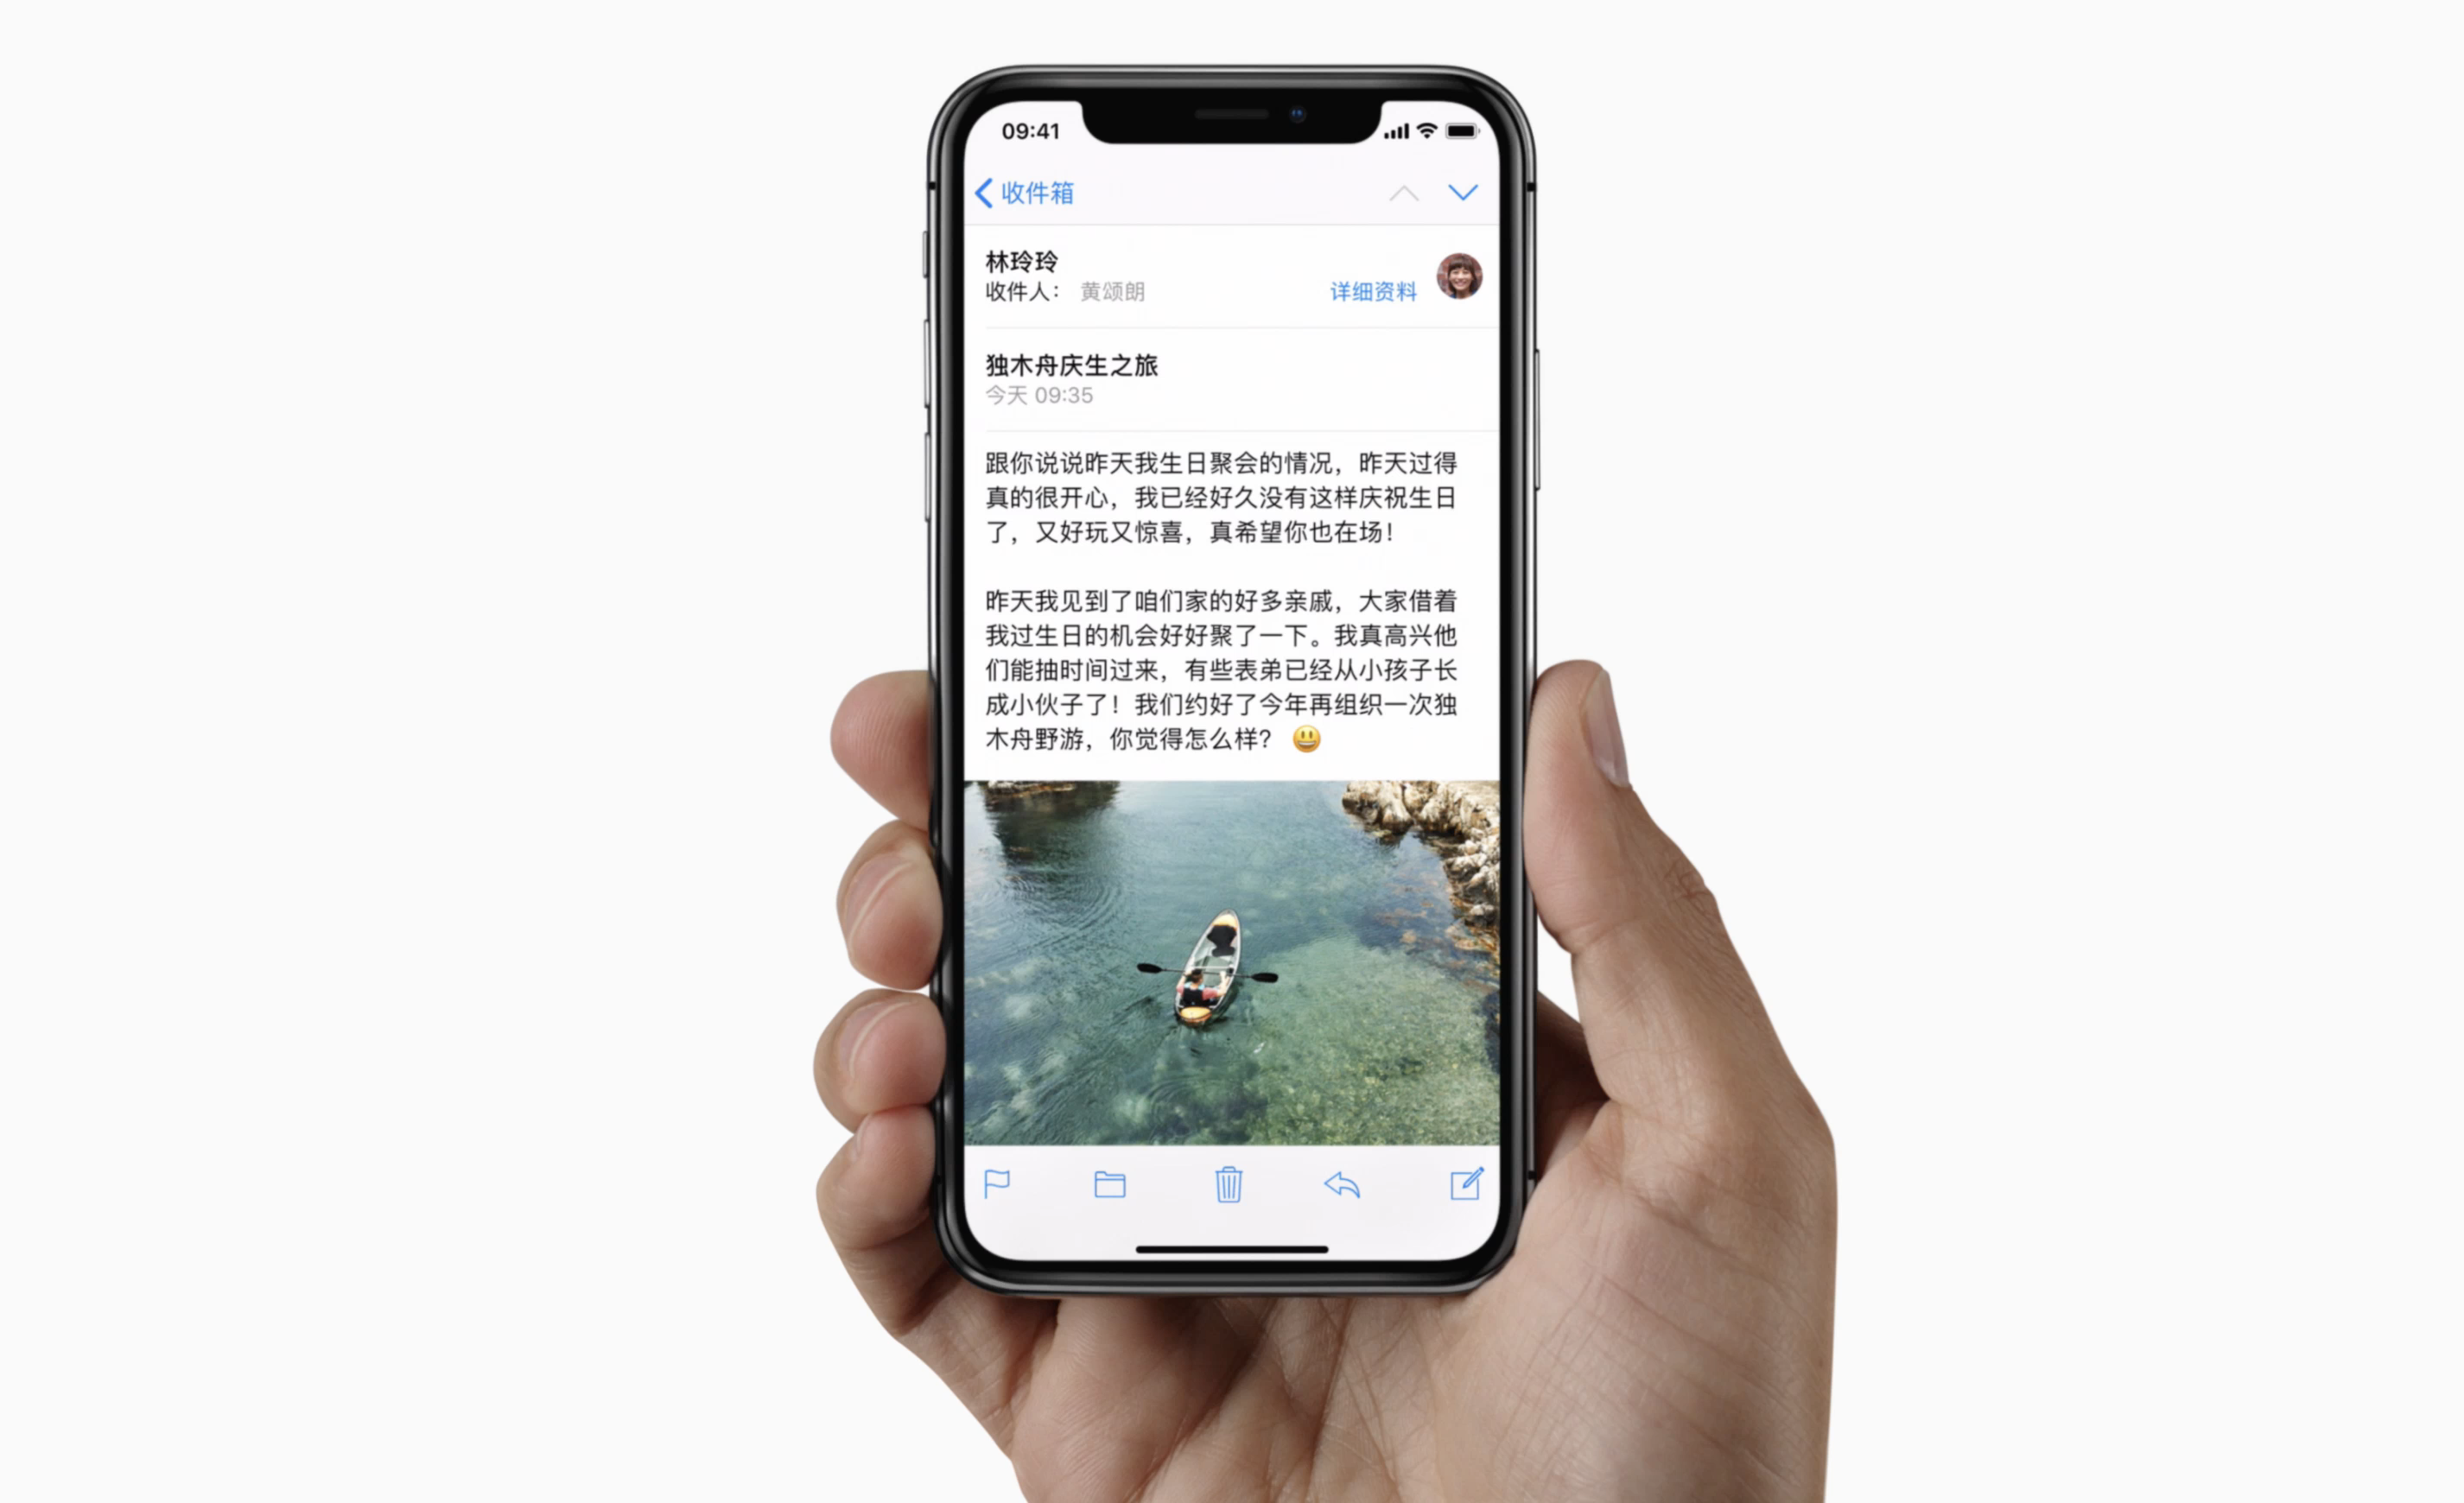 Person reading an email in Chinese on an iPhone X